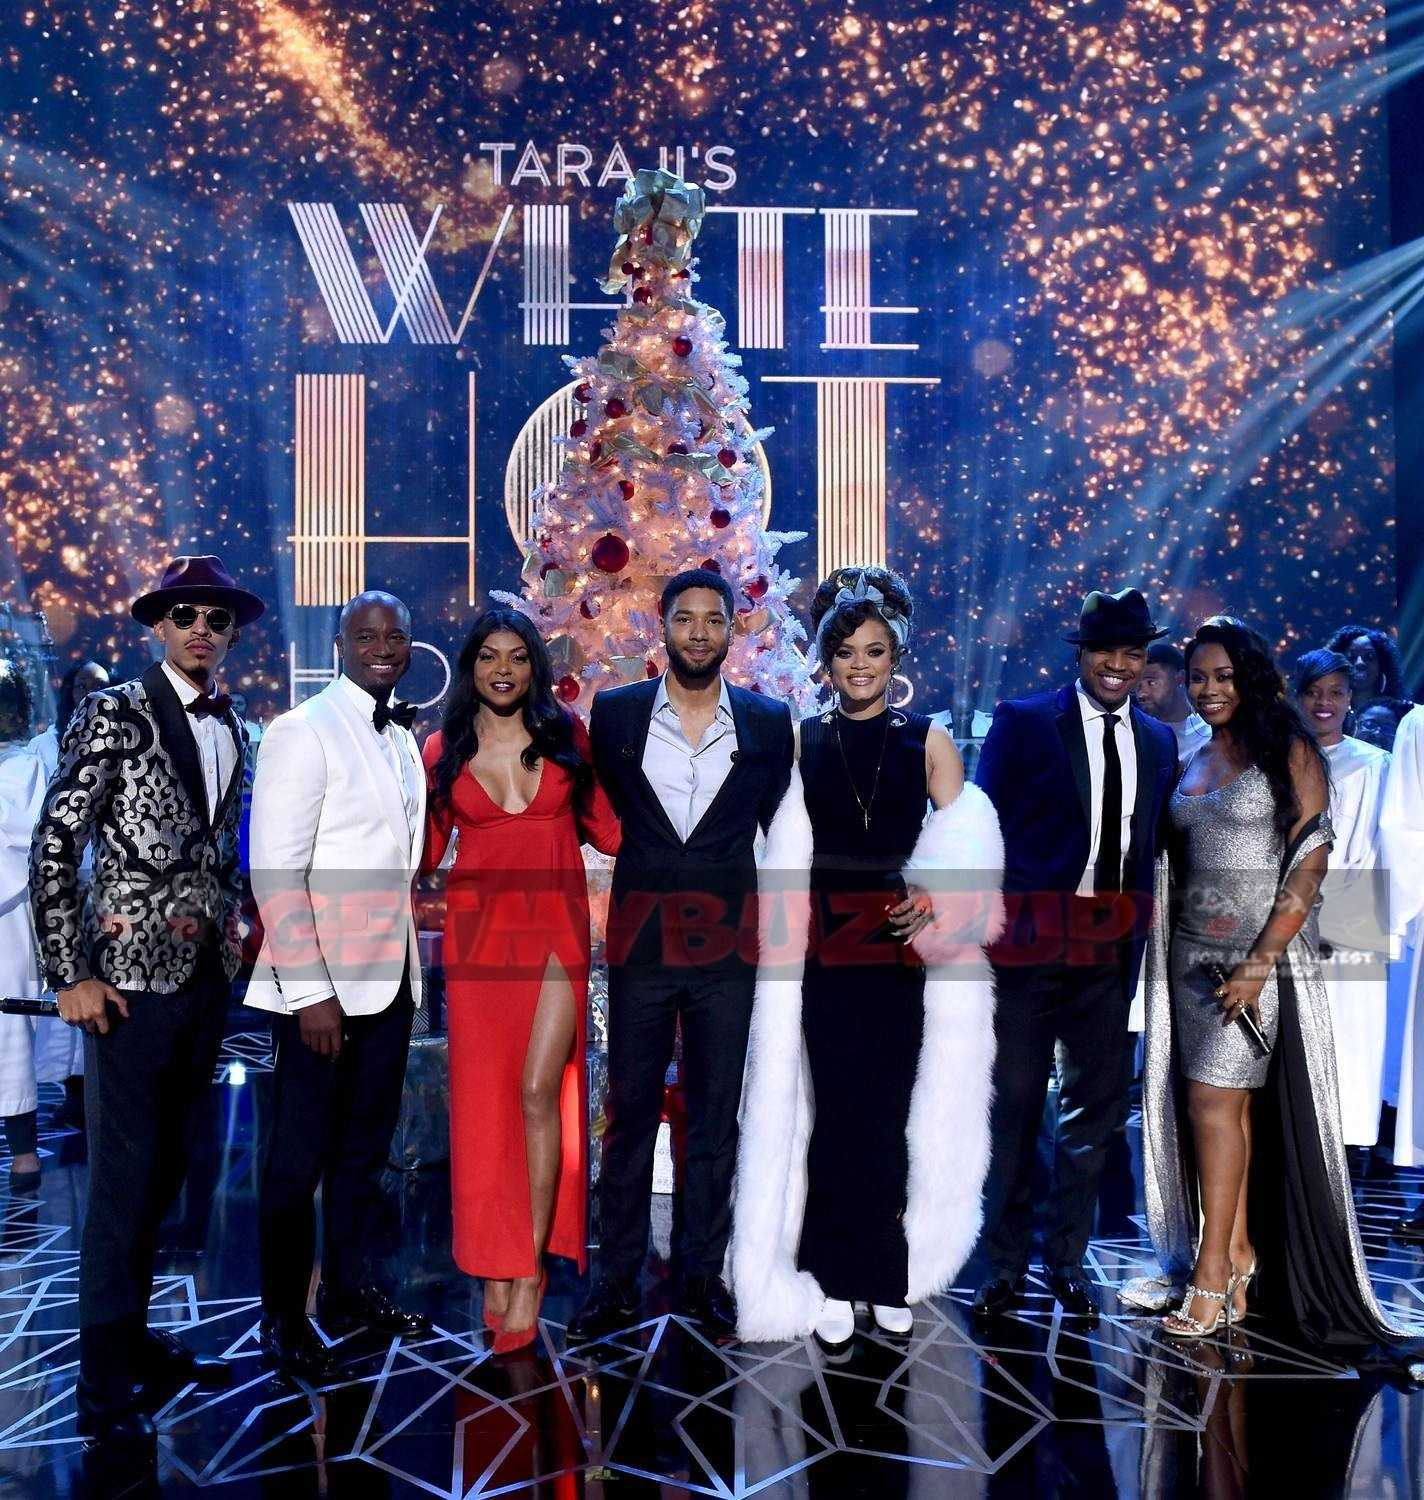 "October London Performing ""Santa Drop Me Some Loot"" on Taraji's White Hot Holidays on FOX [Photos]"